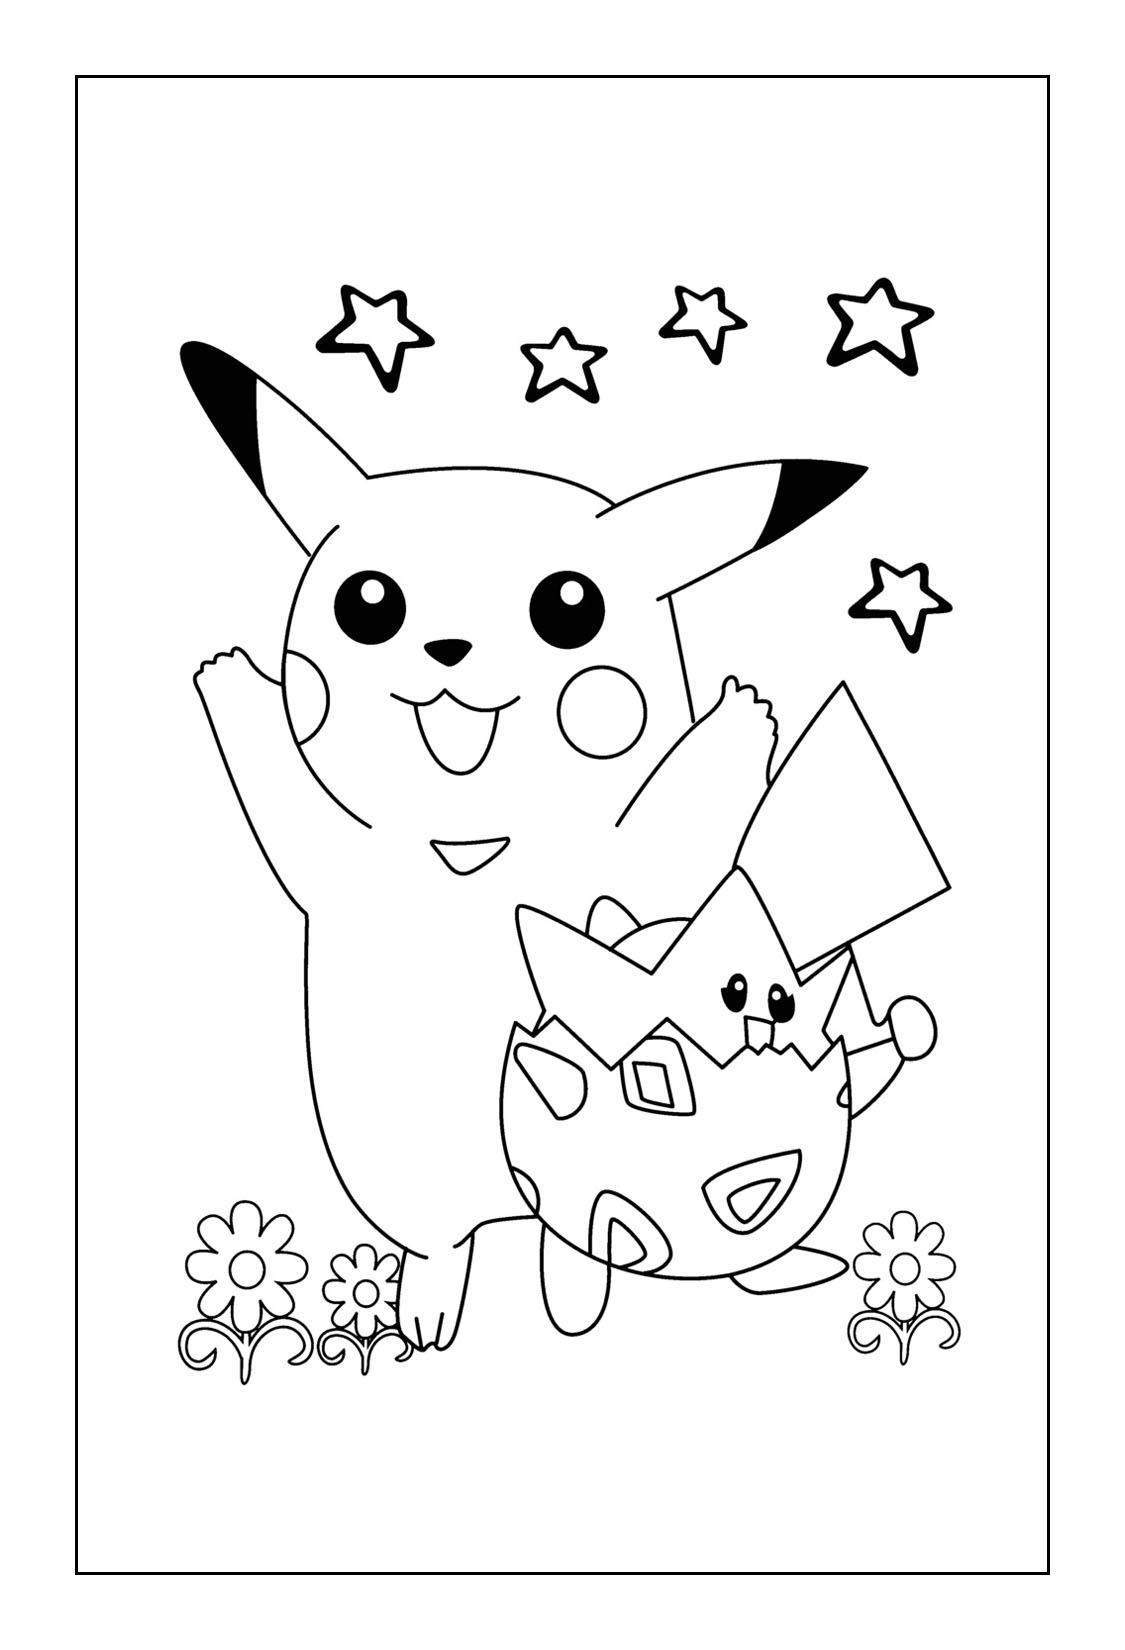 Pikachu Coloring Pages - Pikachu and Togepi